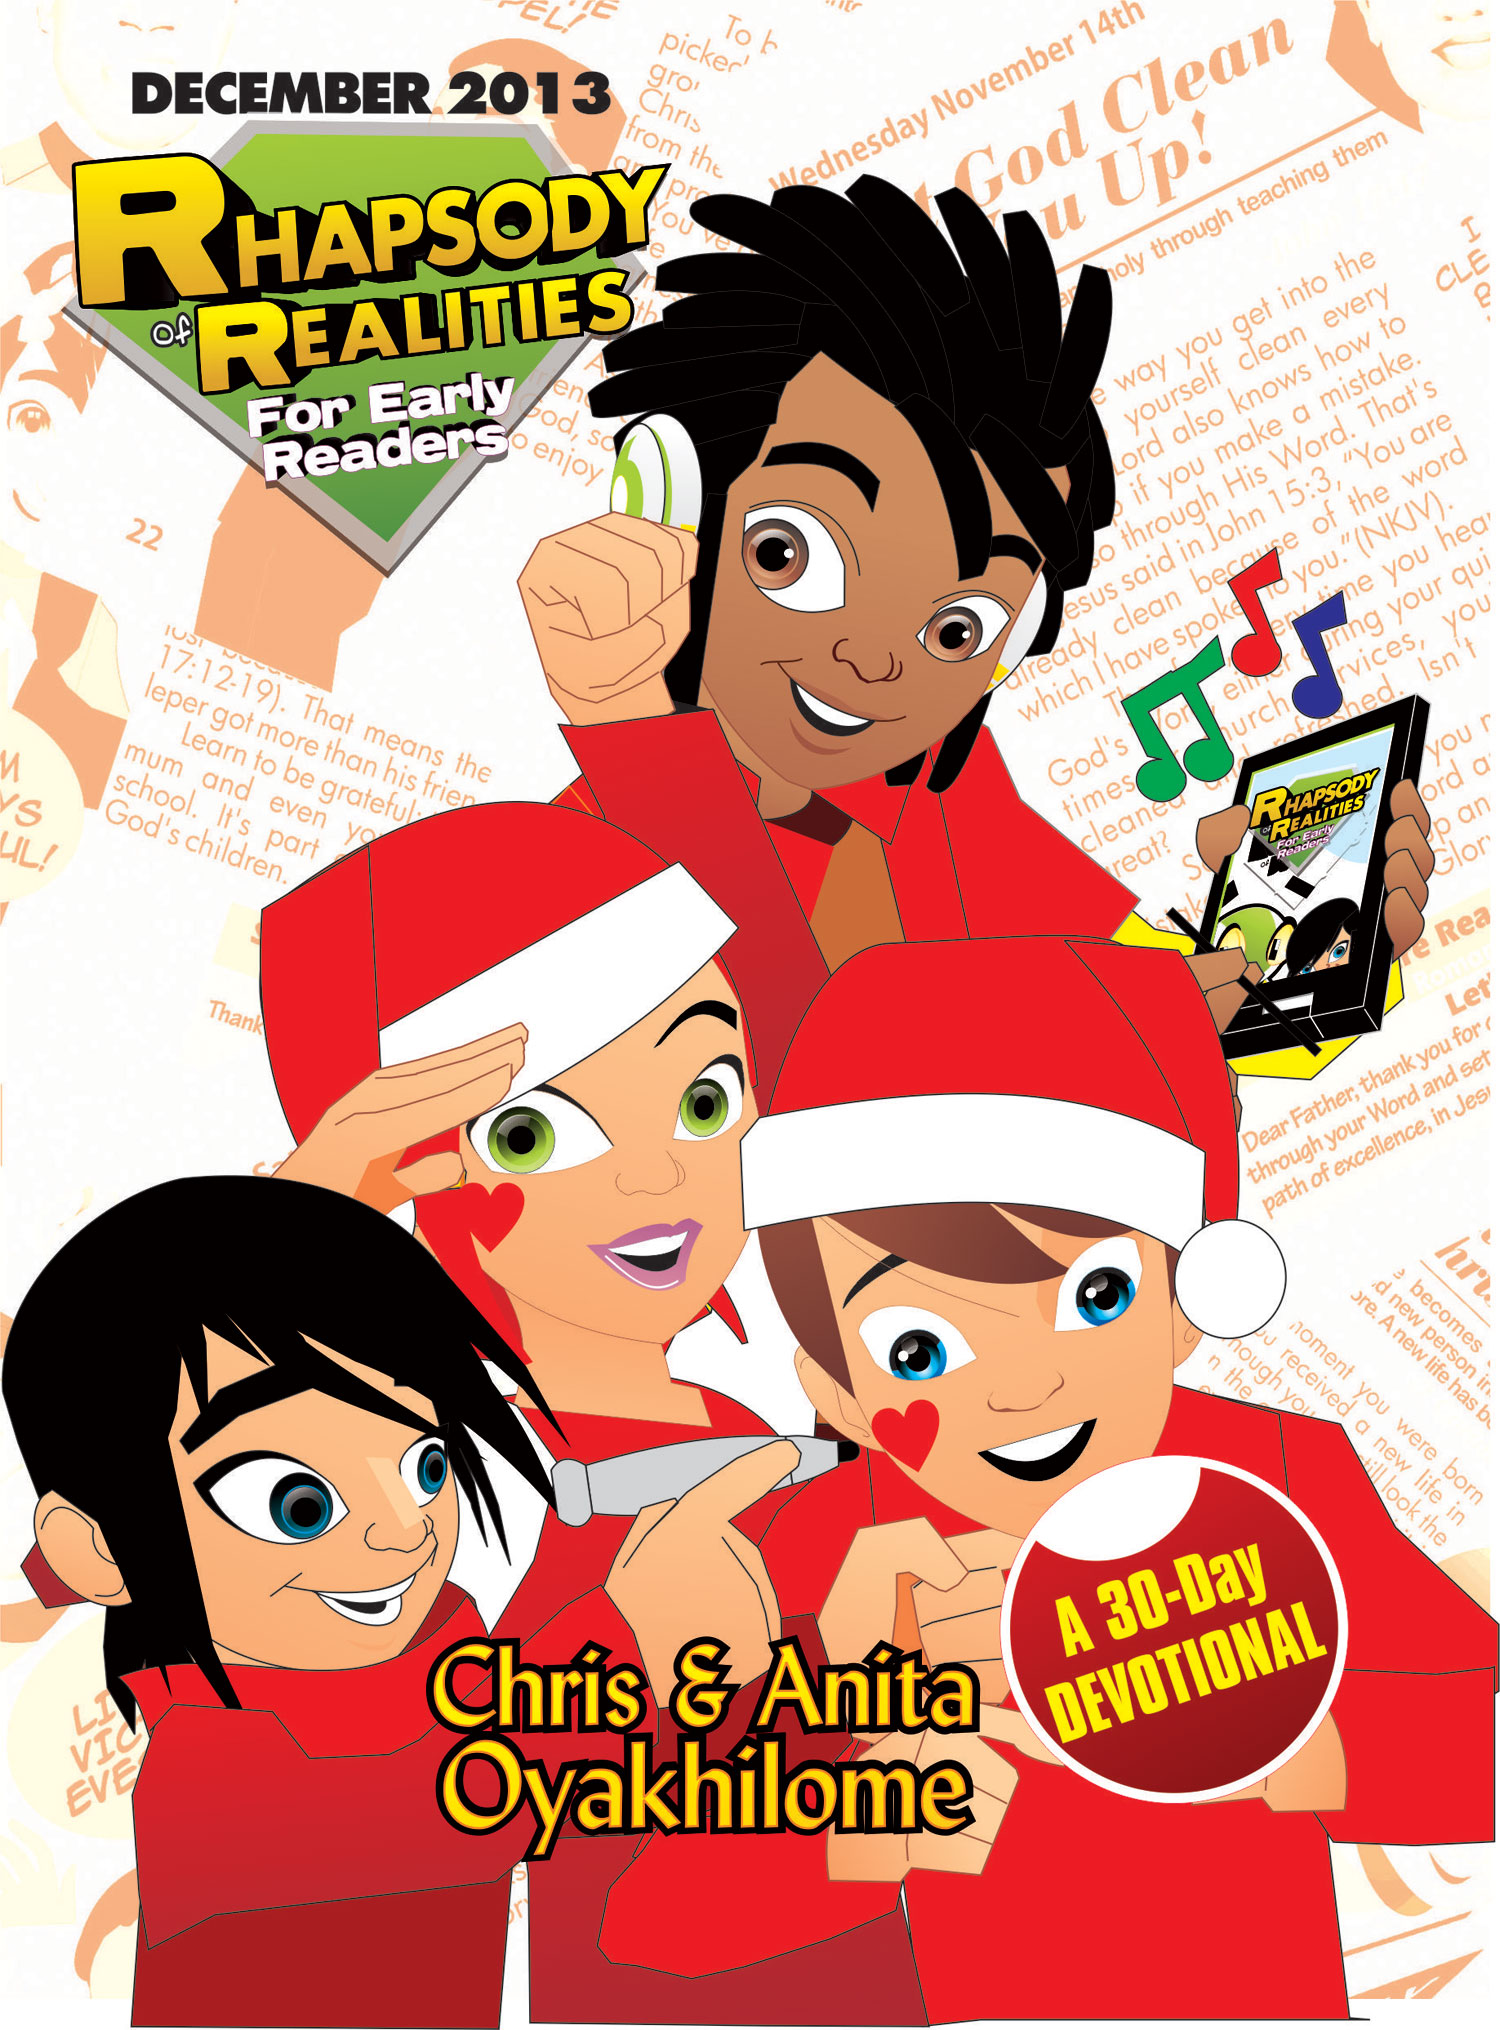 Pastor Chris and Anita Oyakhilome - Rhapsody of Realities for Early Readers – December Edition